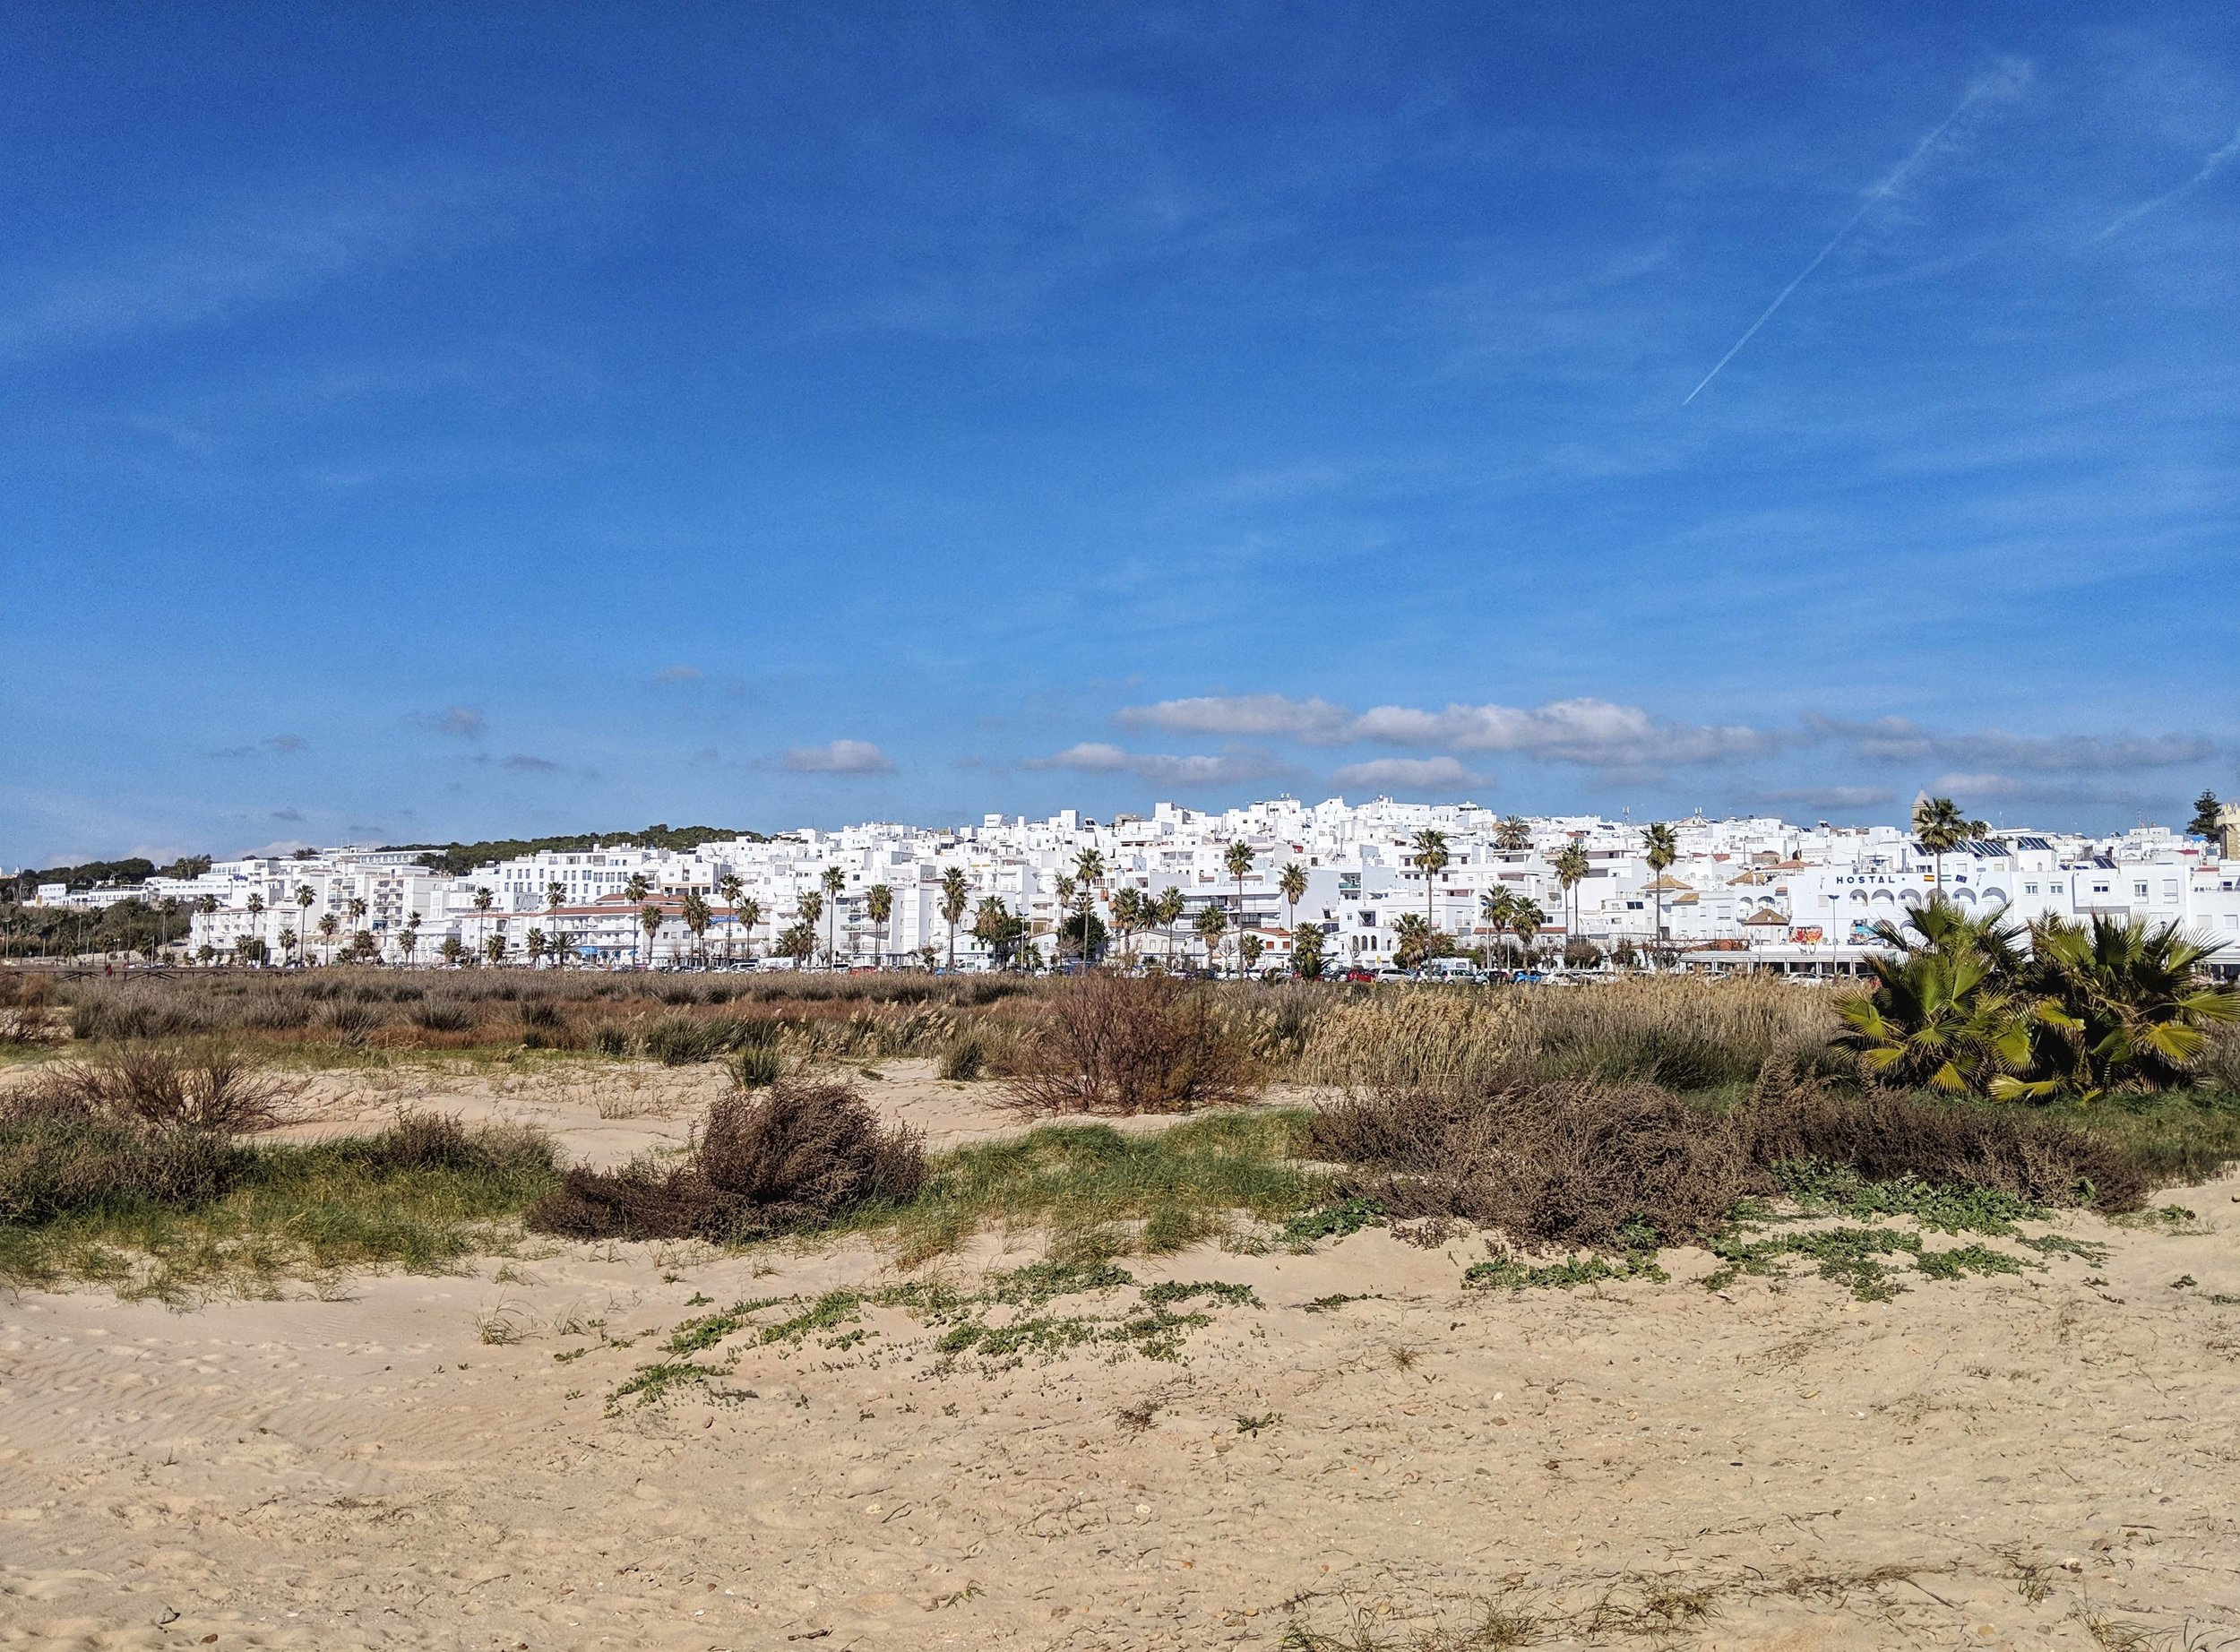 Looking back at the town from the beach in Conil